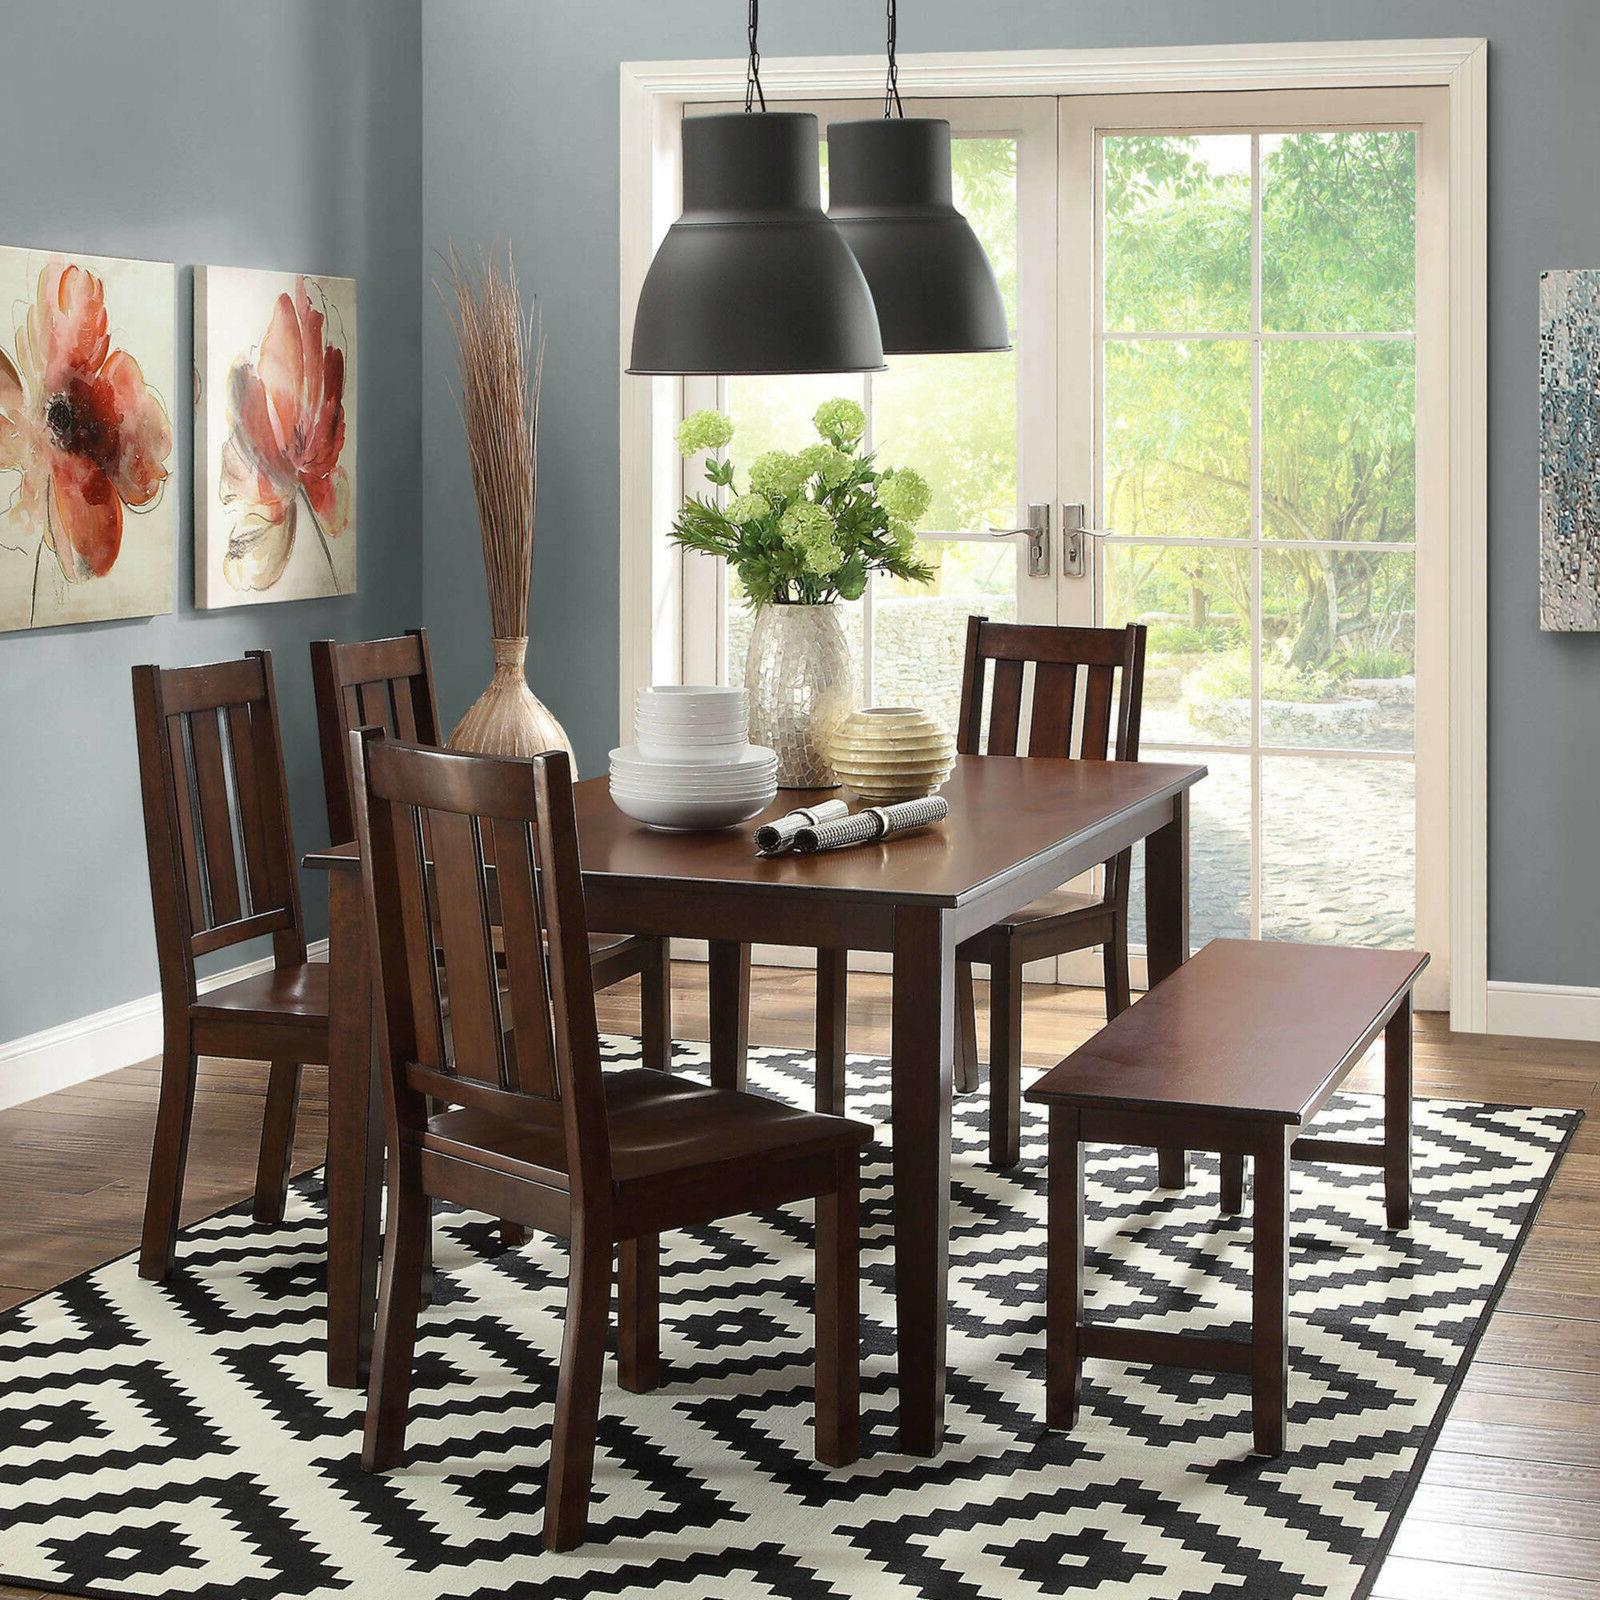 Better and Gardens Bankston Dining Table Espresso Color